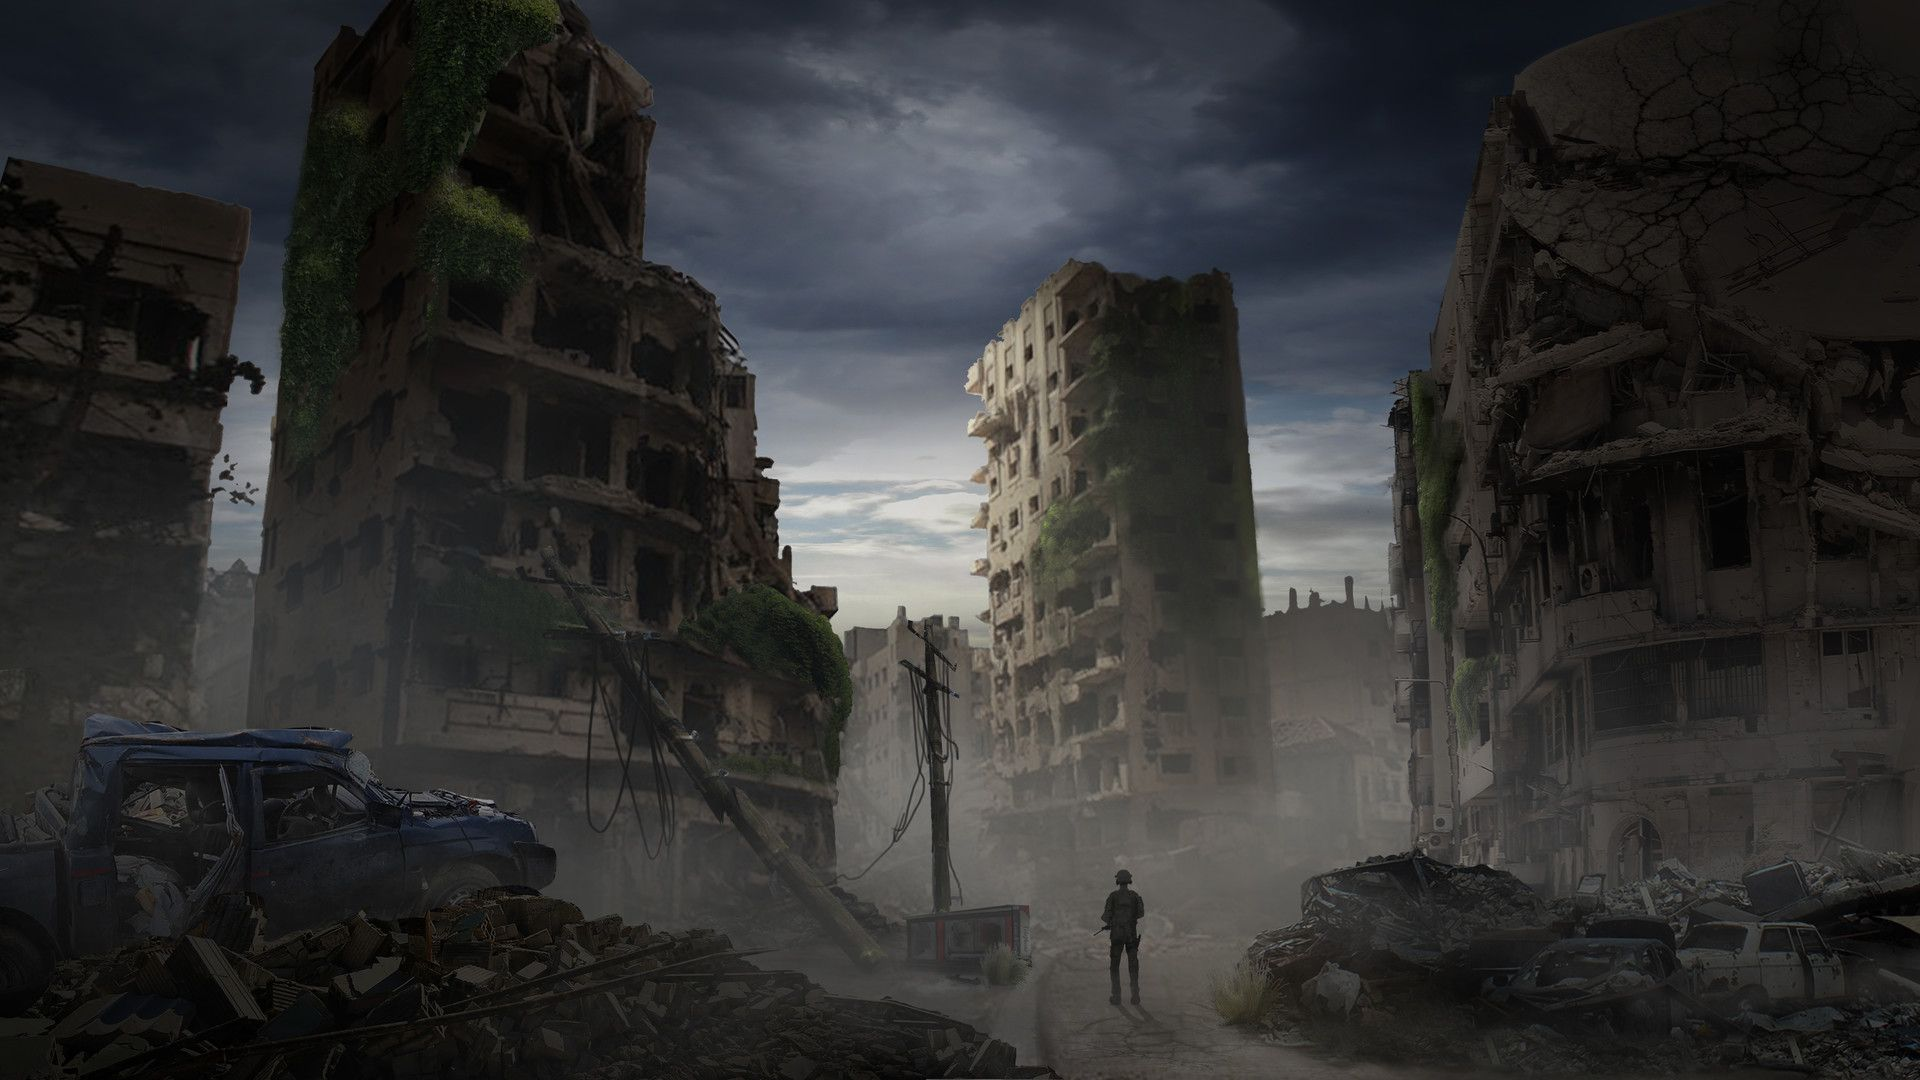 Destroyed City Annie Lau Apocalypse Aesthetic Cool Landscapes Anime Scenery